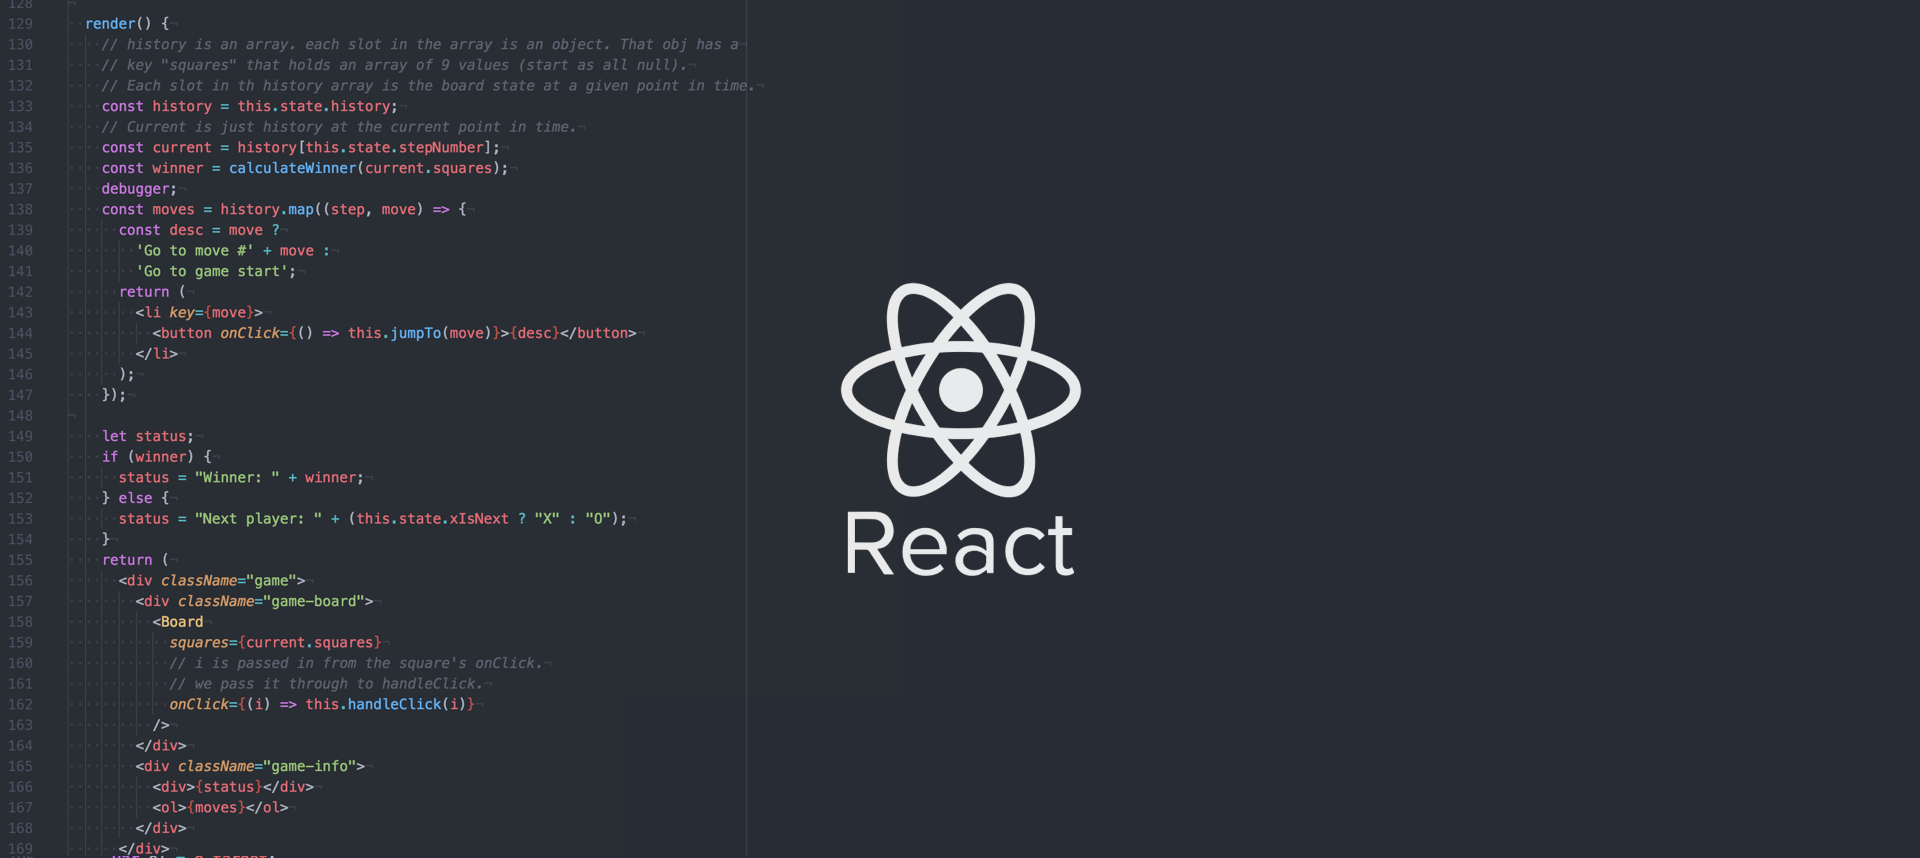 react-state@2x.png